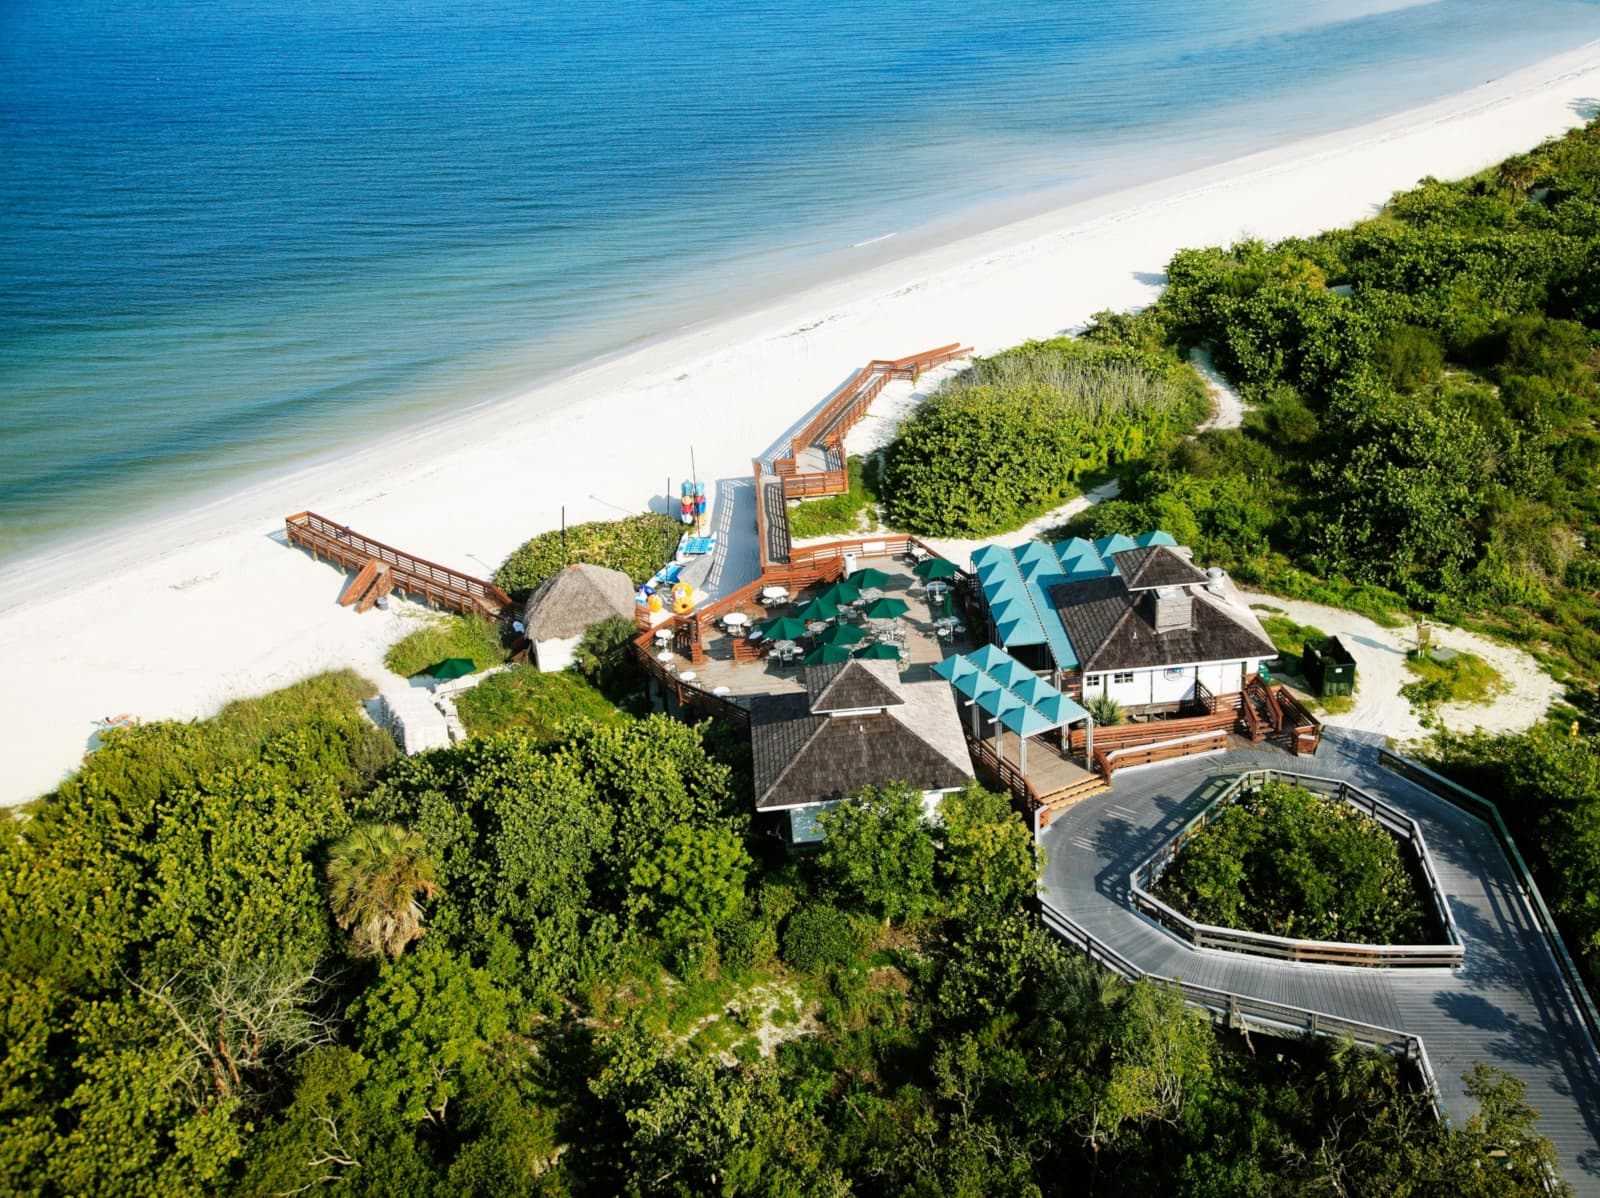 Naples Grande Beach Resort - one of the best tennis resorts for your tennis holidays in Florida